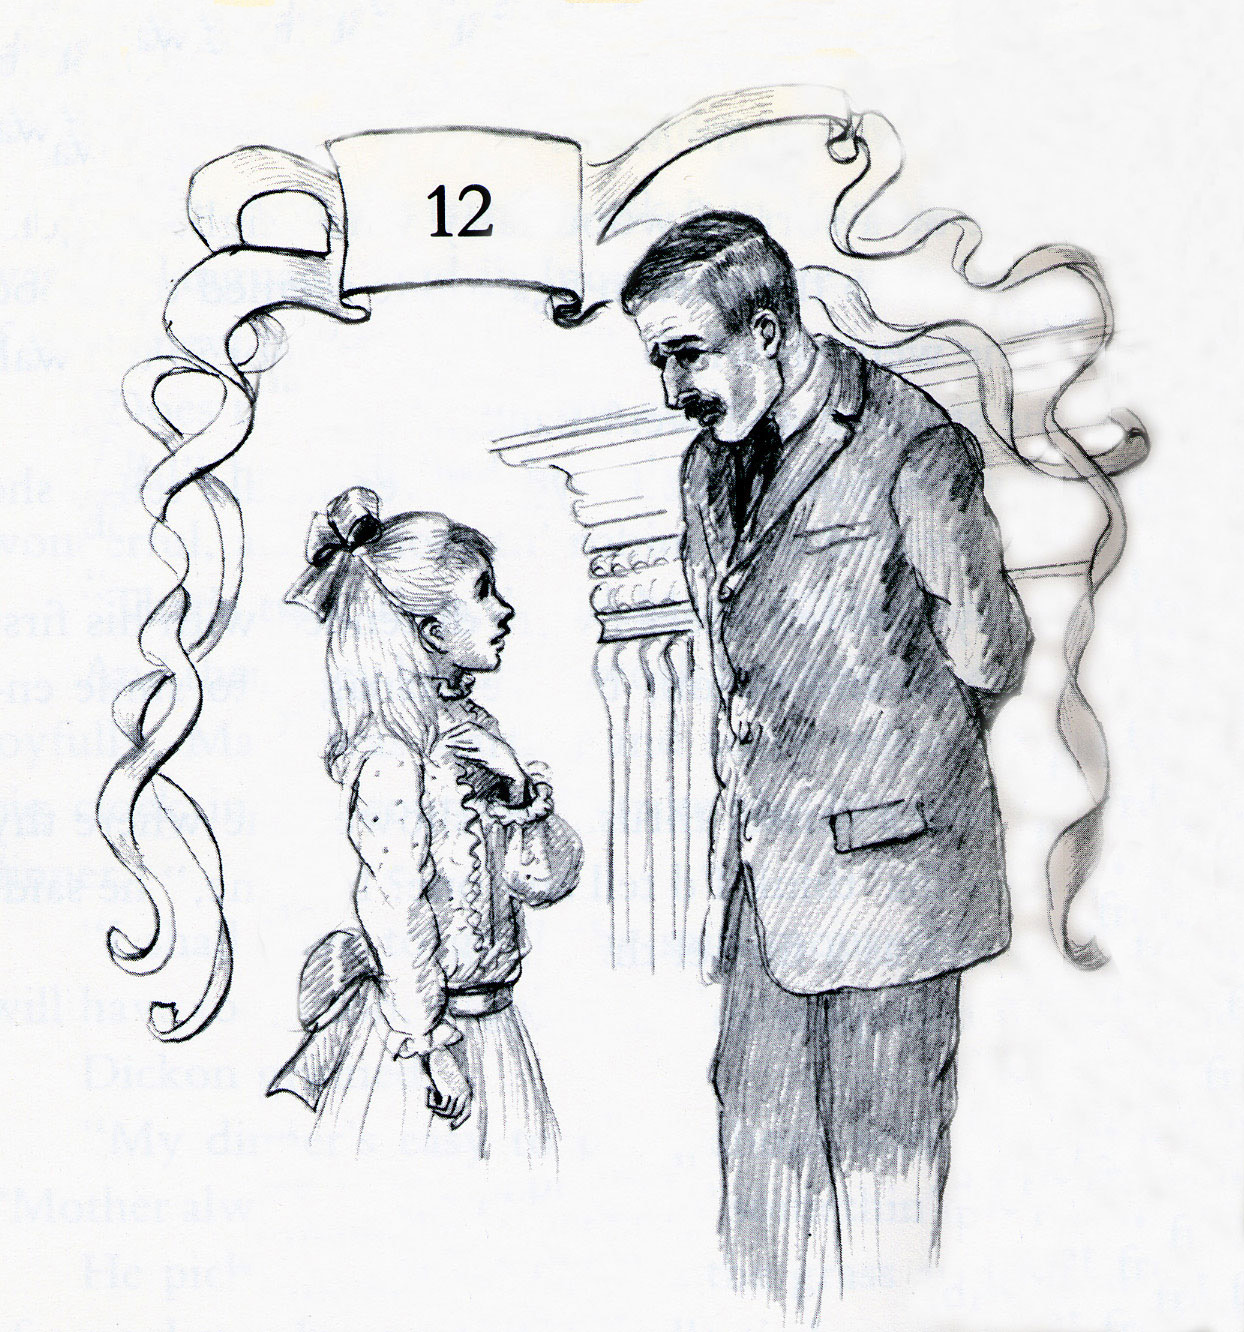 06. Chapter 12. Secret Garden Mary & Father